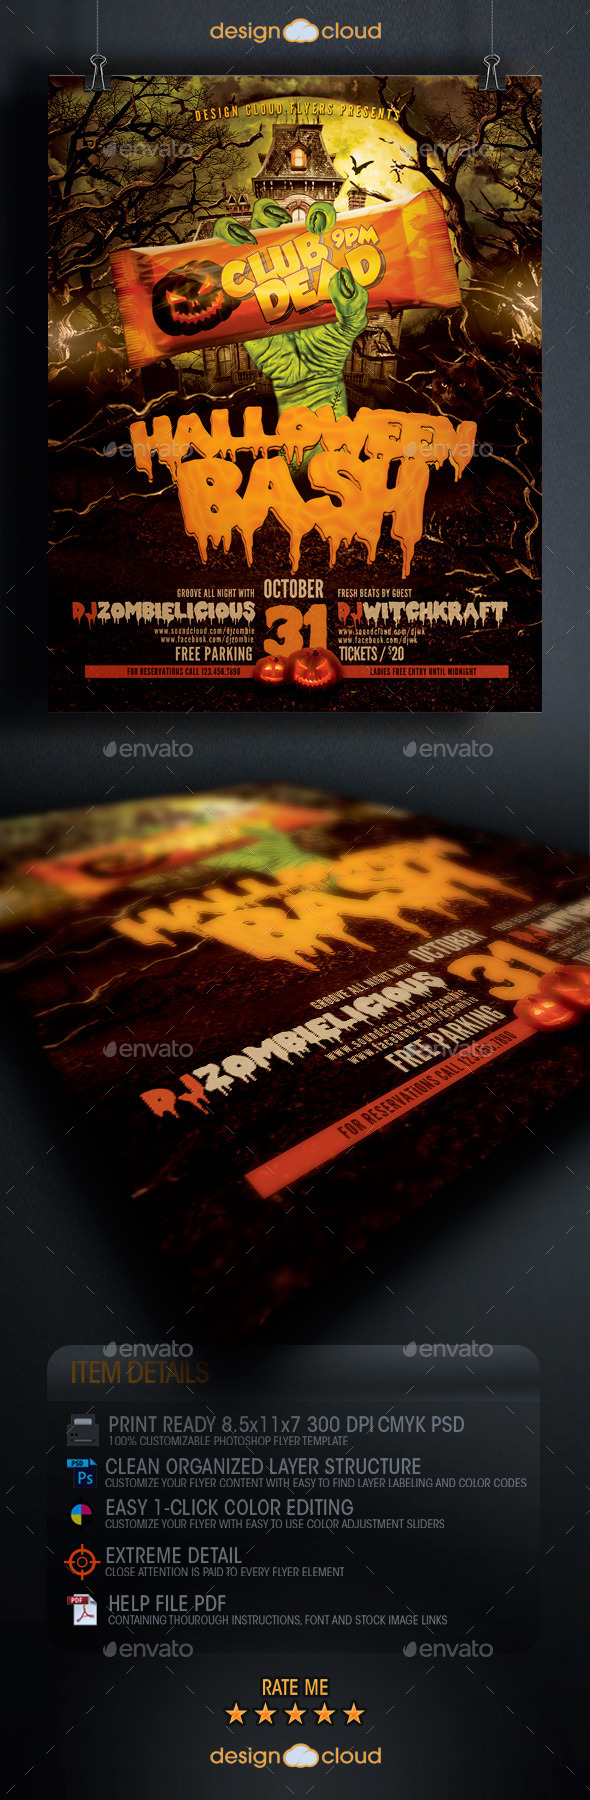 Halloween Bash Flyer Template - Holidays Events